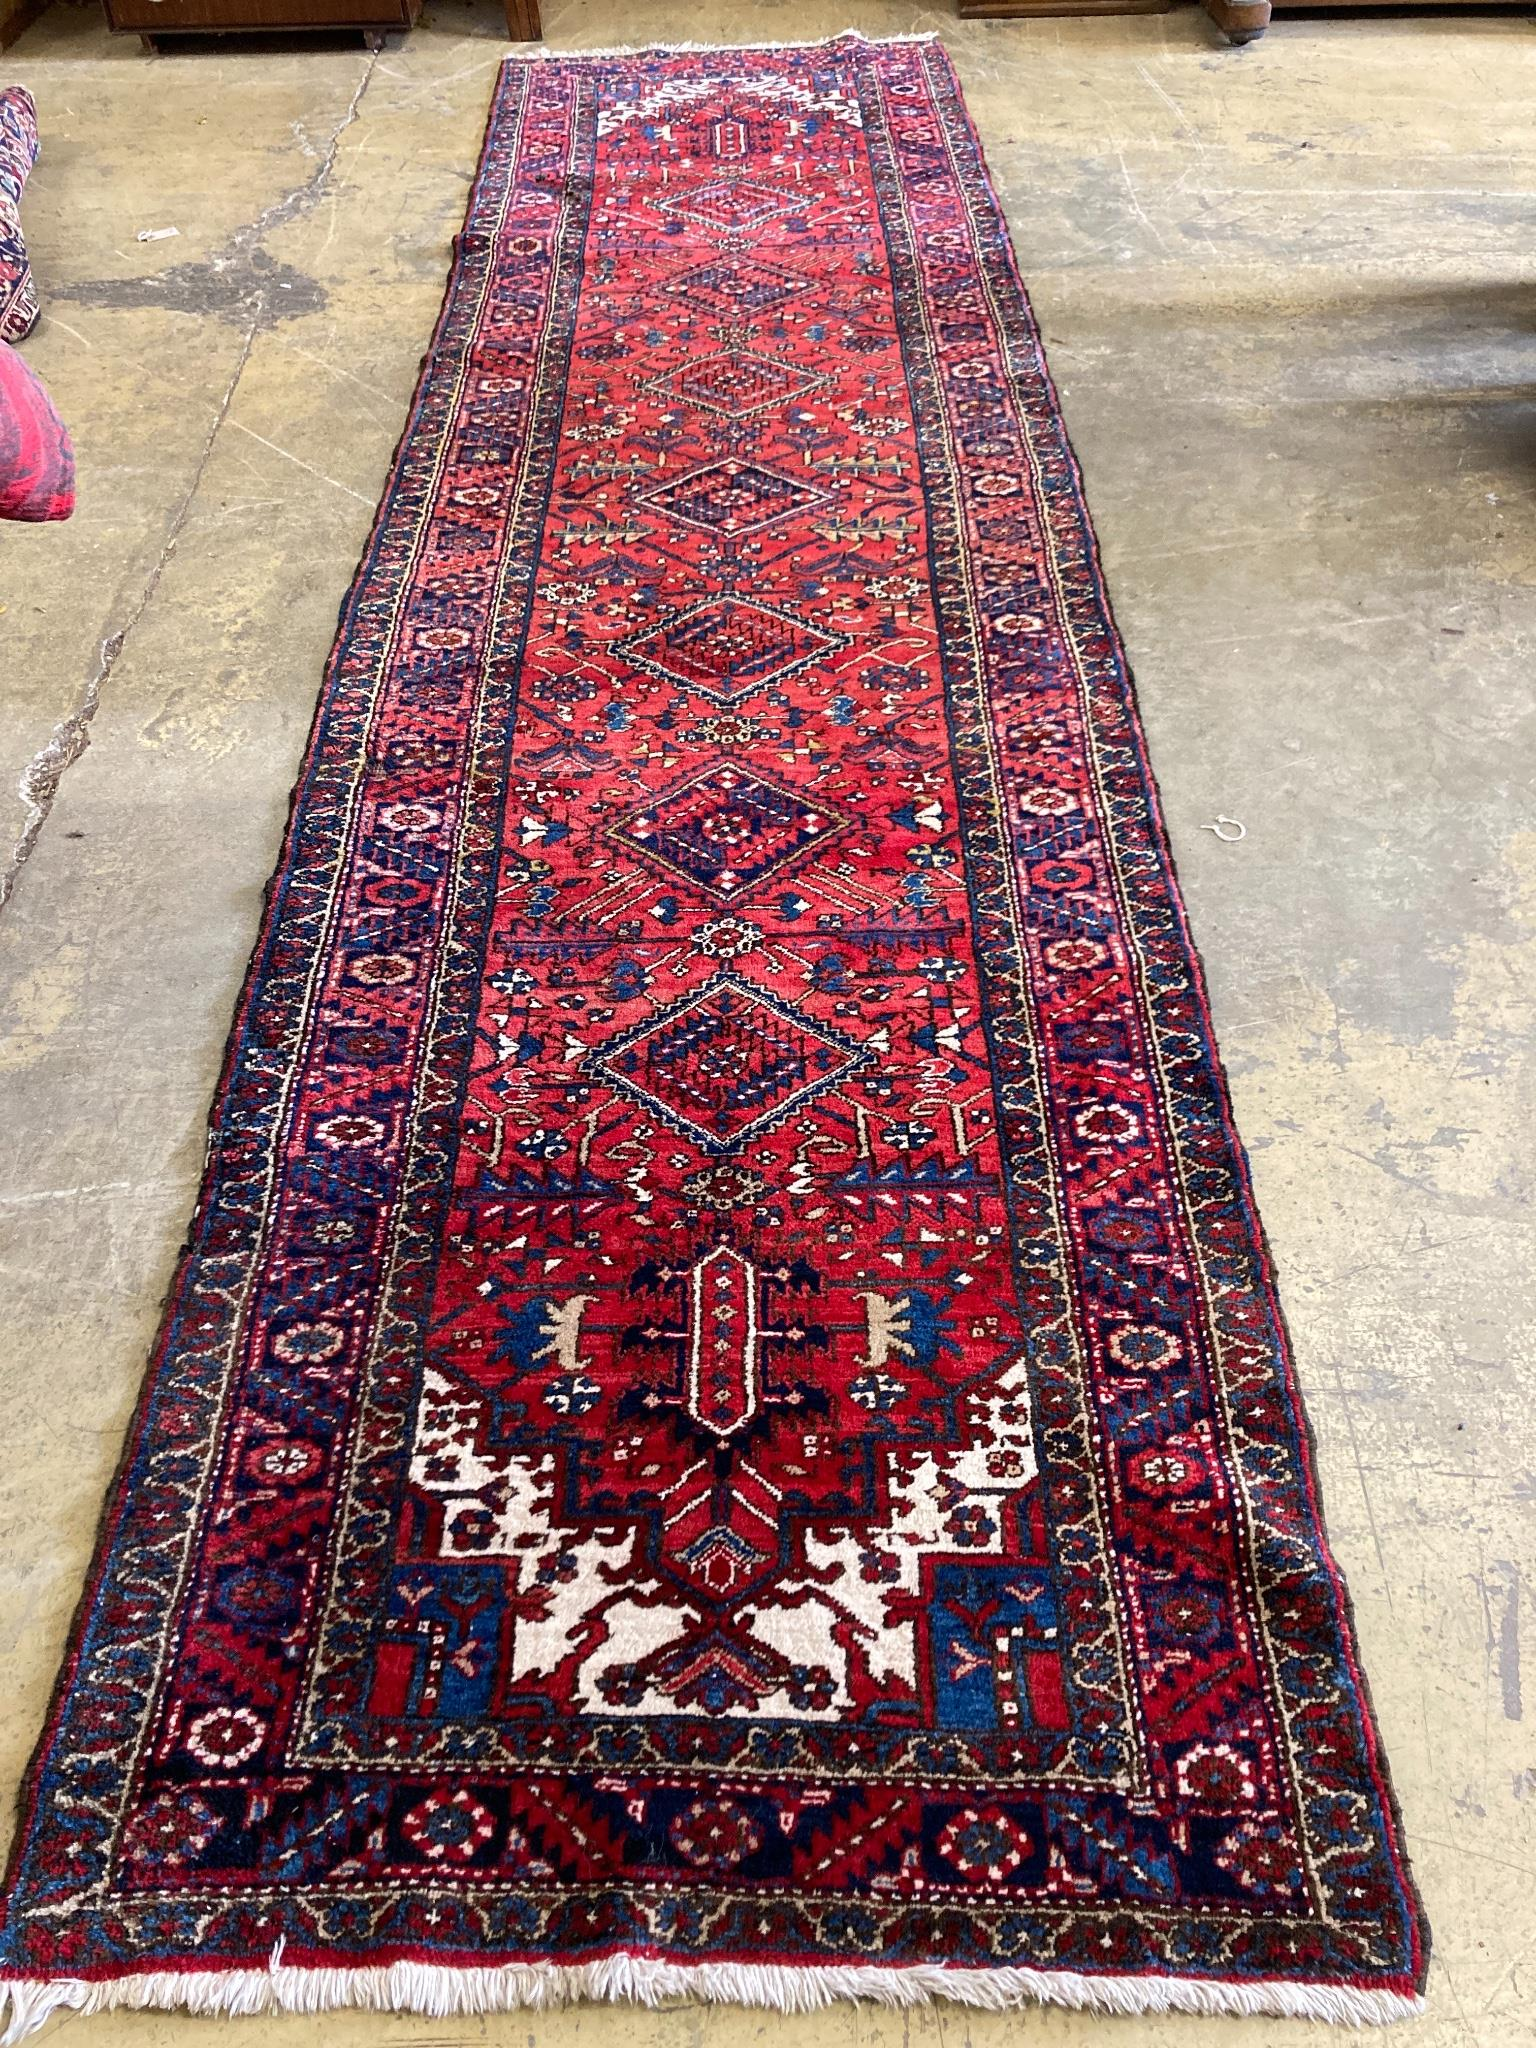 A North West Persian red ground hall carpet, 440 x 115cm